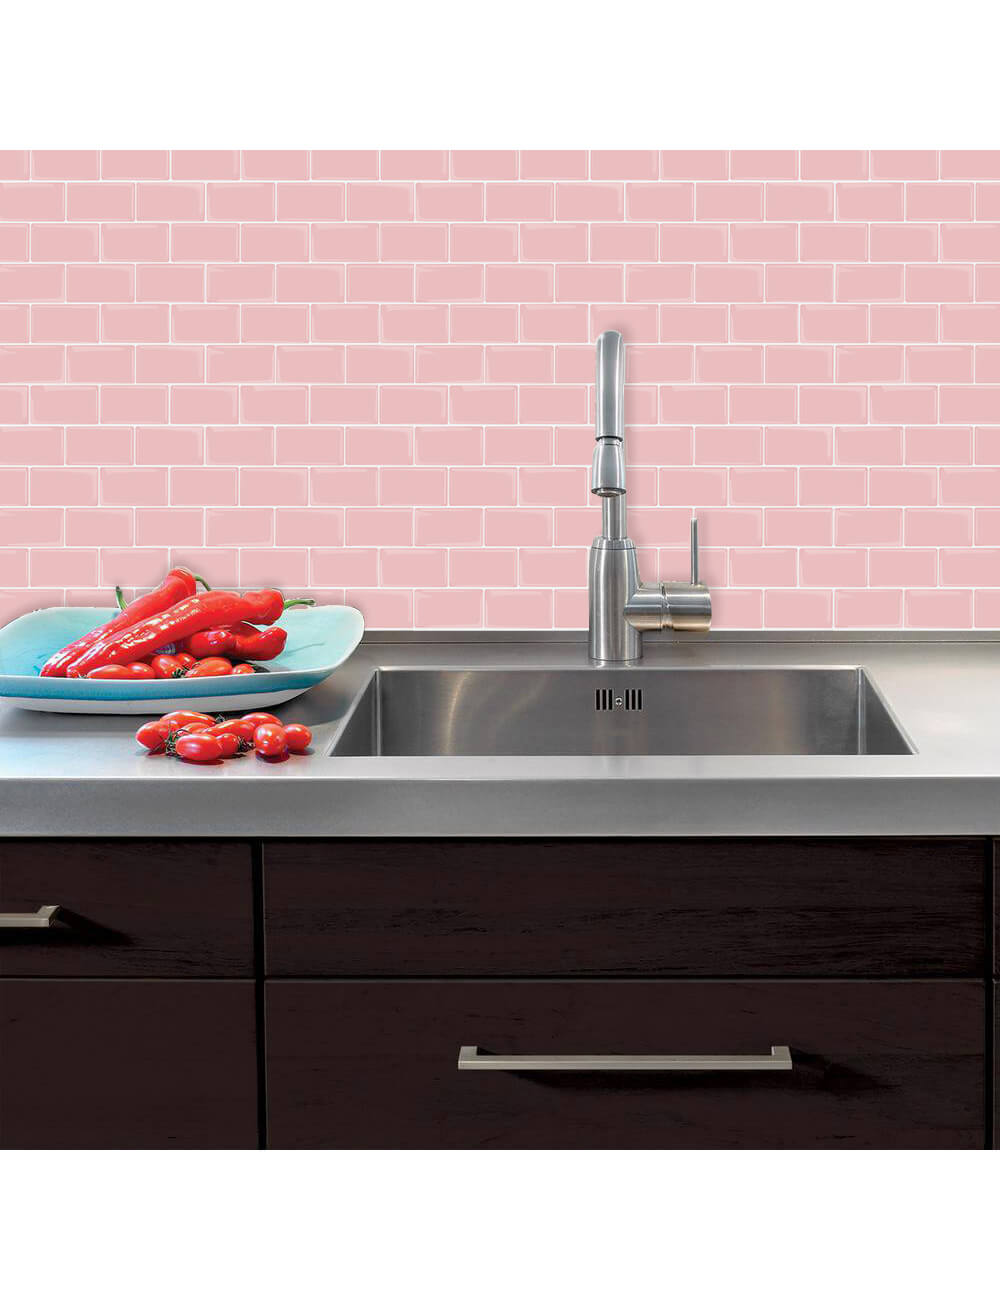 peel and stick pink subway tile for kitchen